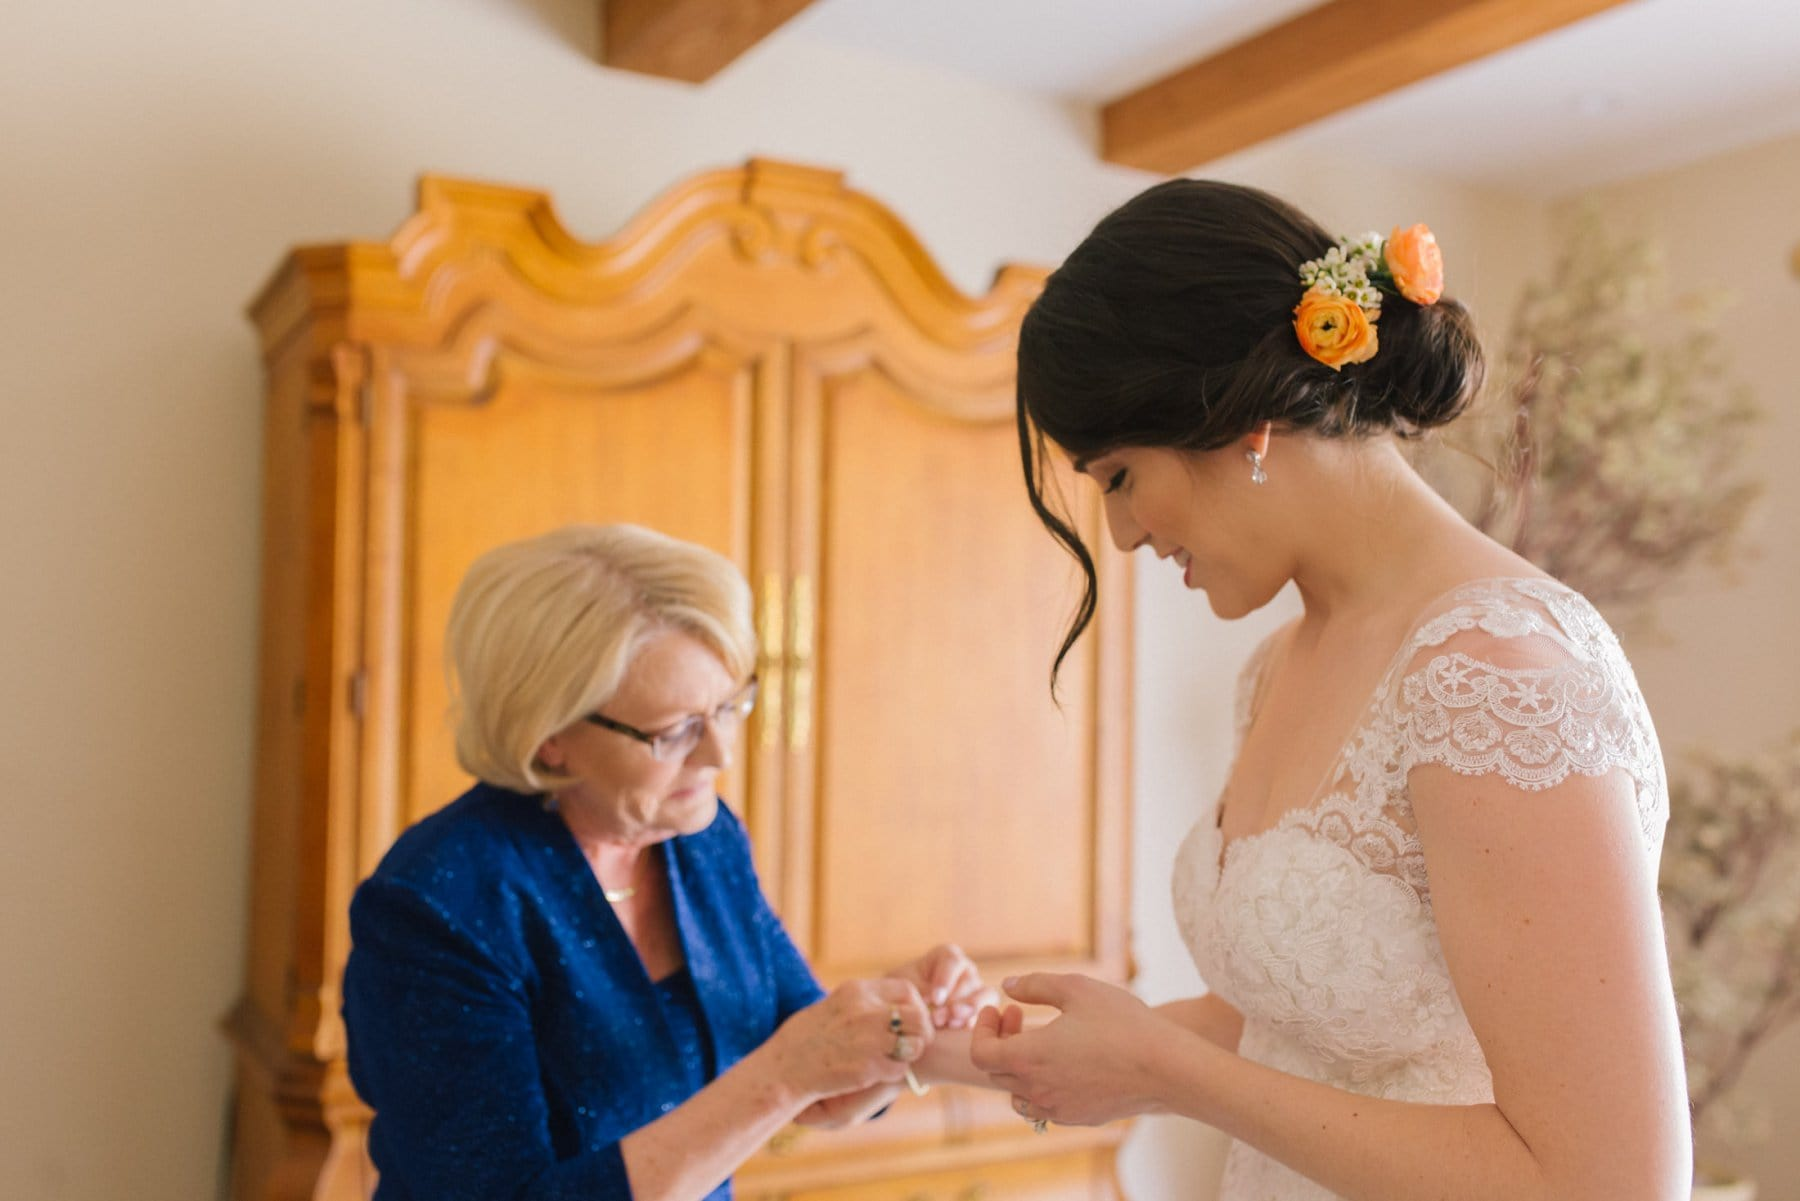 Scottsdale documentary wedding photographer grandma putting on jewelry for bride